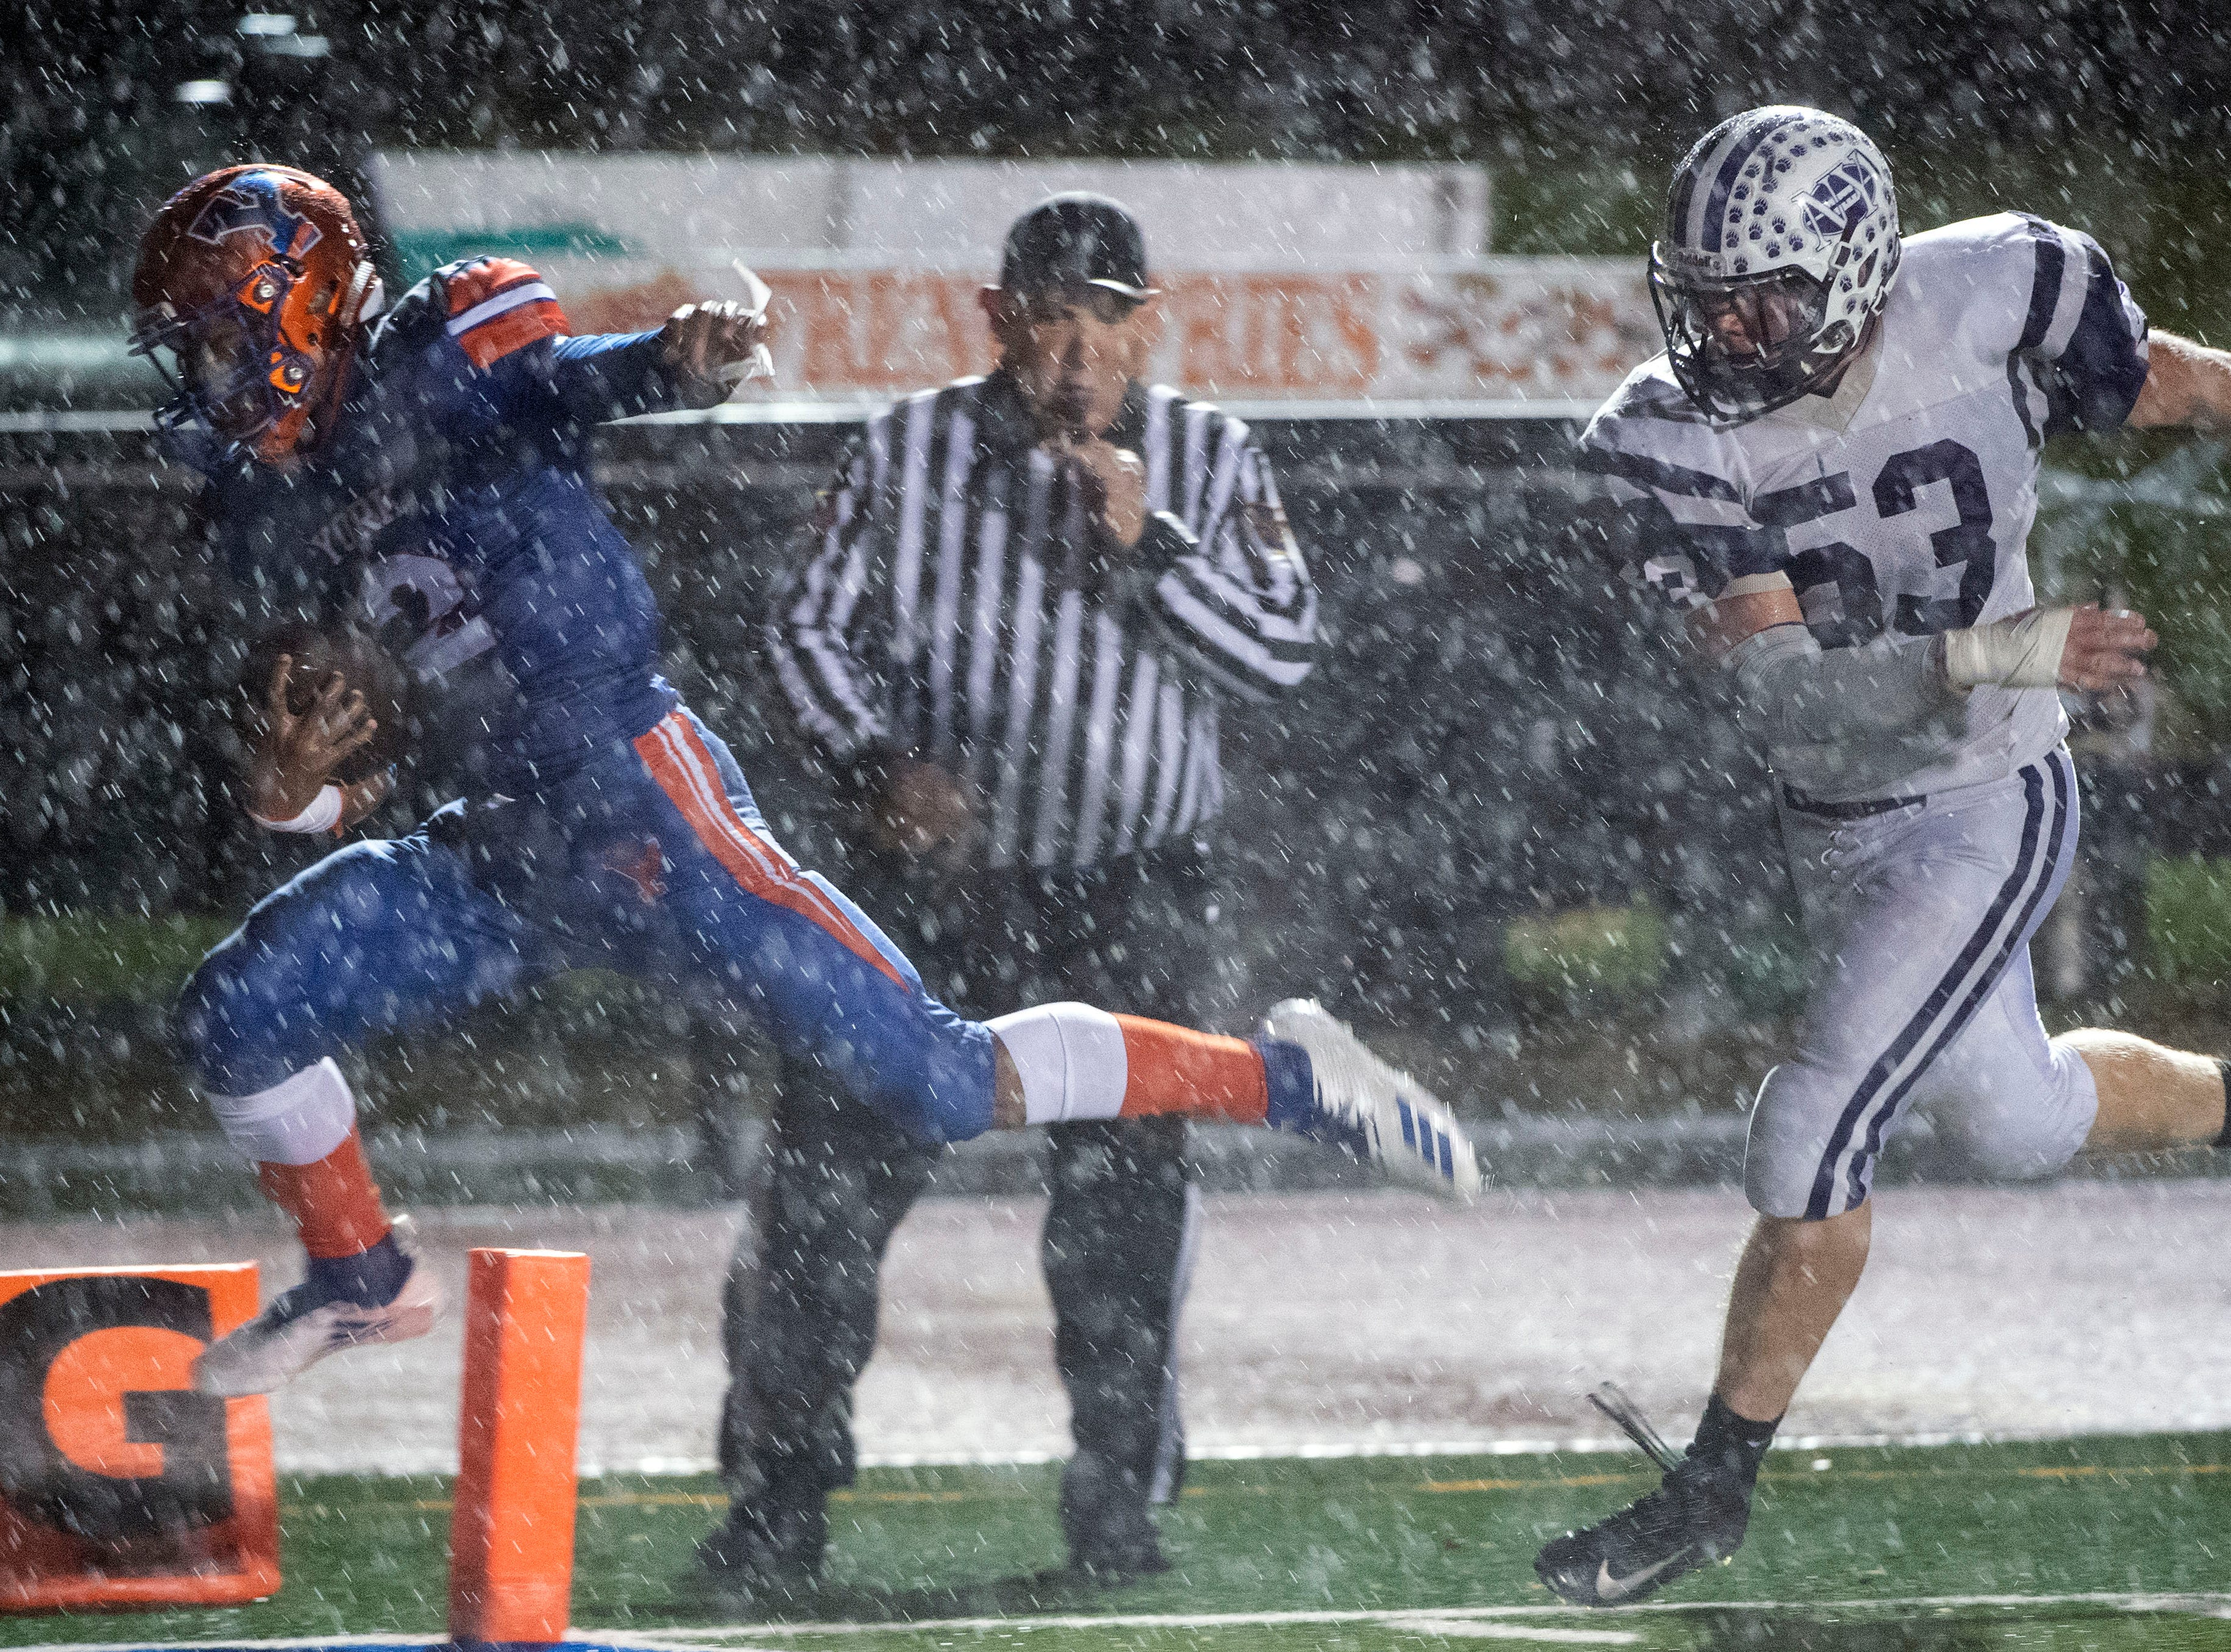 York High vs. Shippensburg District 3 football game moved to different field